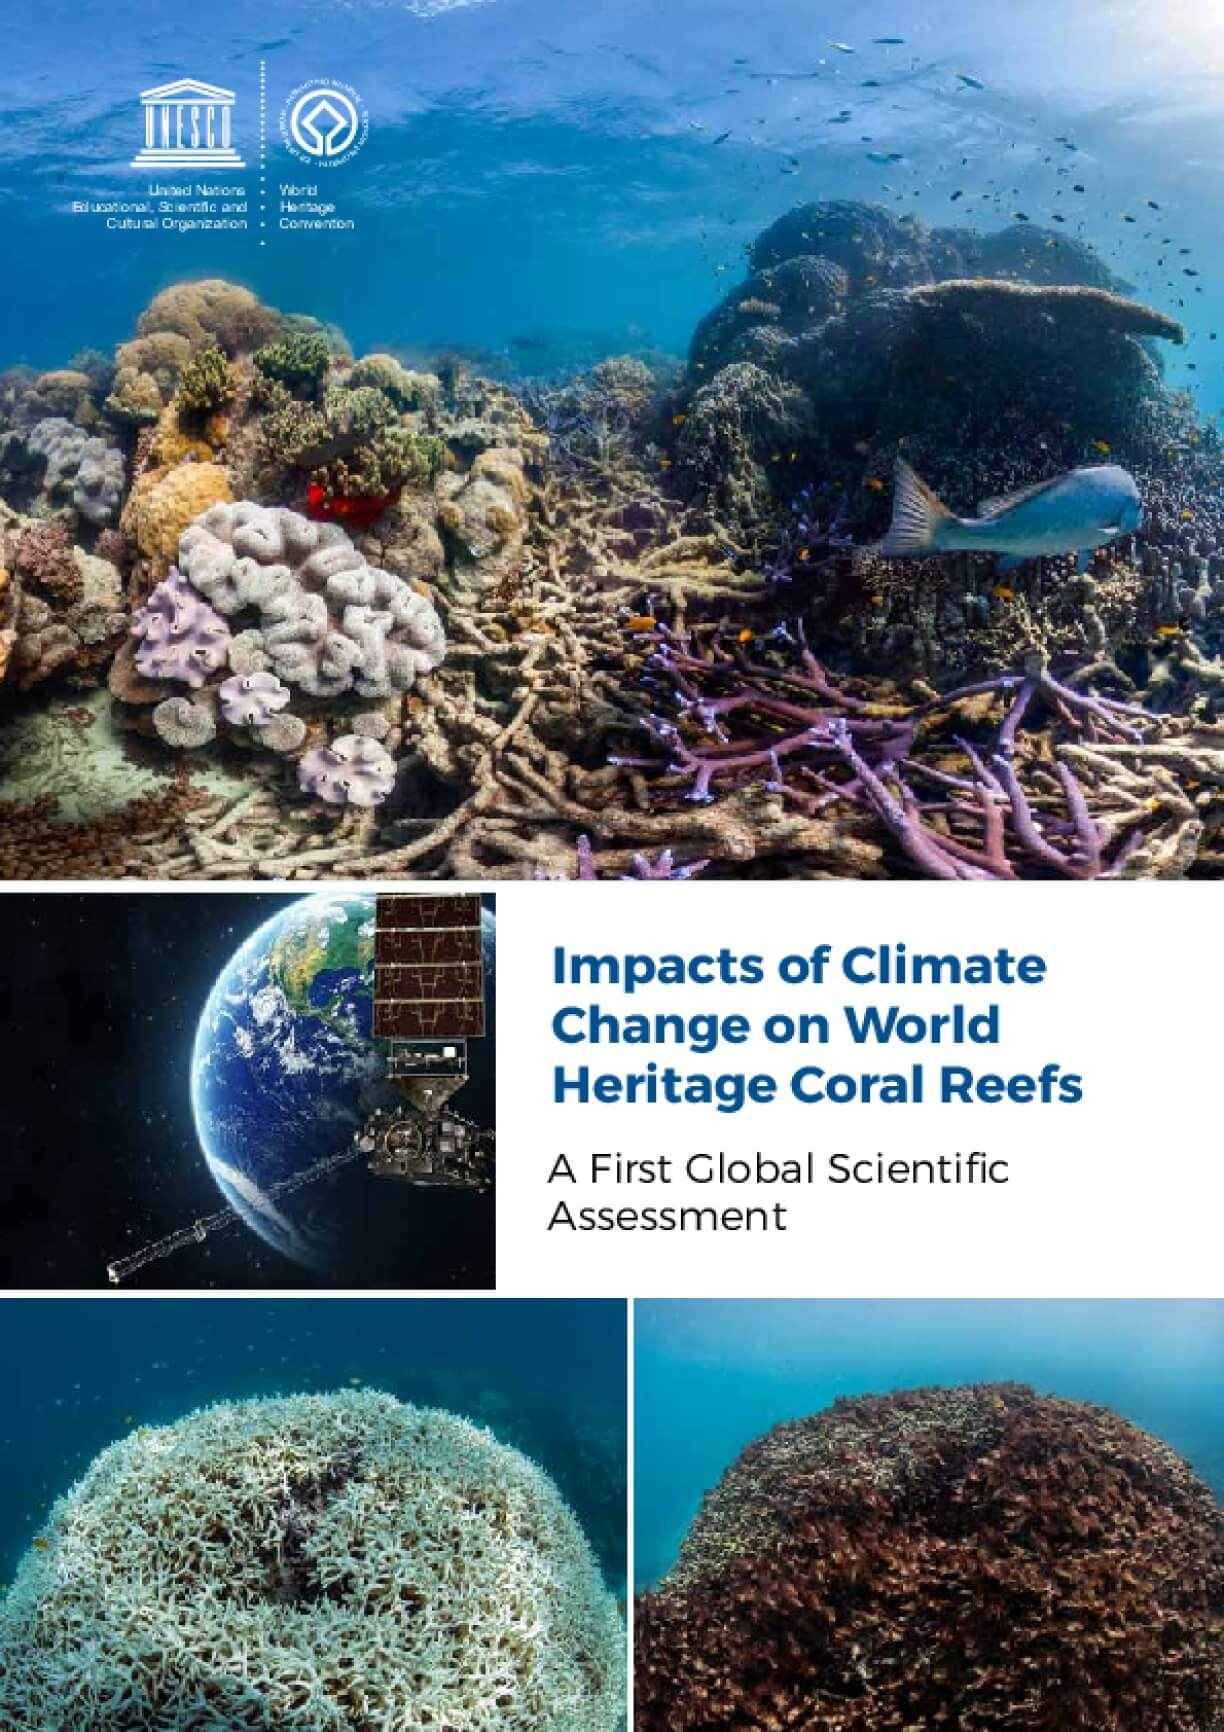 Impacts of Climate Change on World Heritage Coral Reefs: A First Global Scientific Assessment